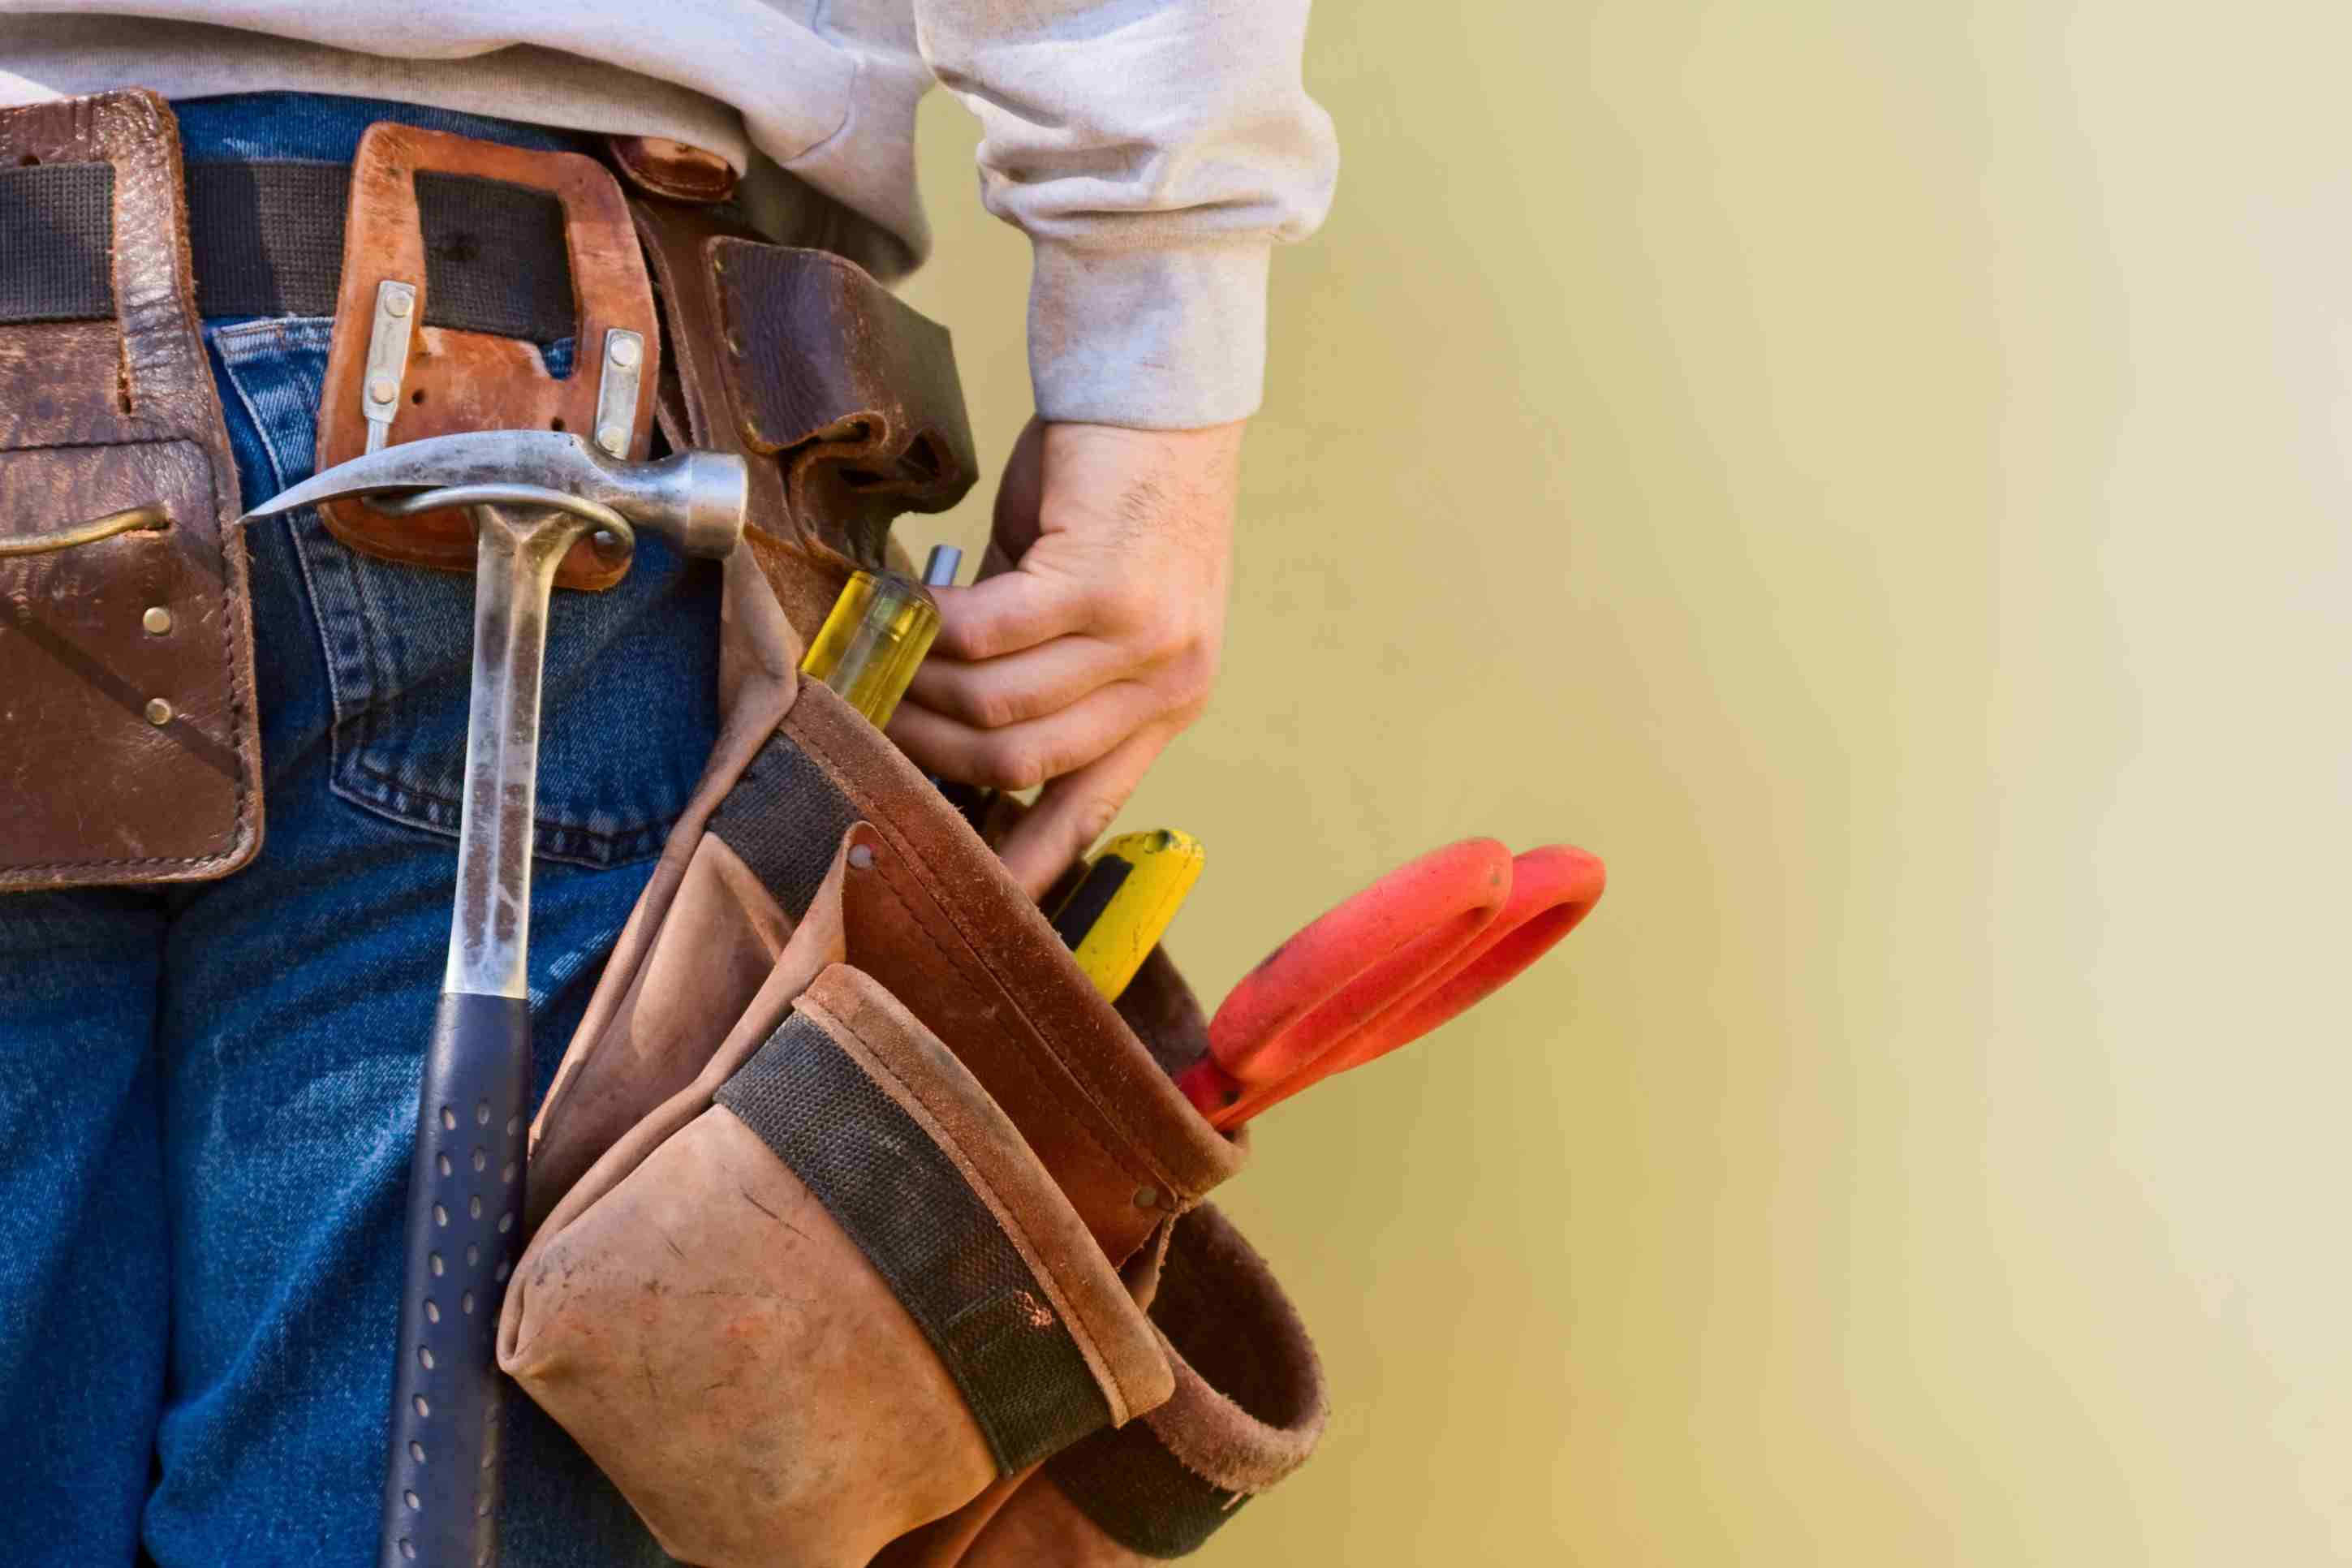 Close-up of a contractor's tool belt full of tools